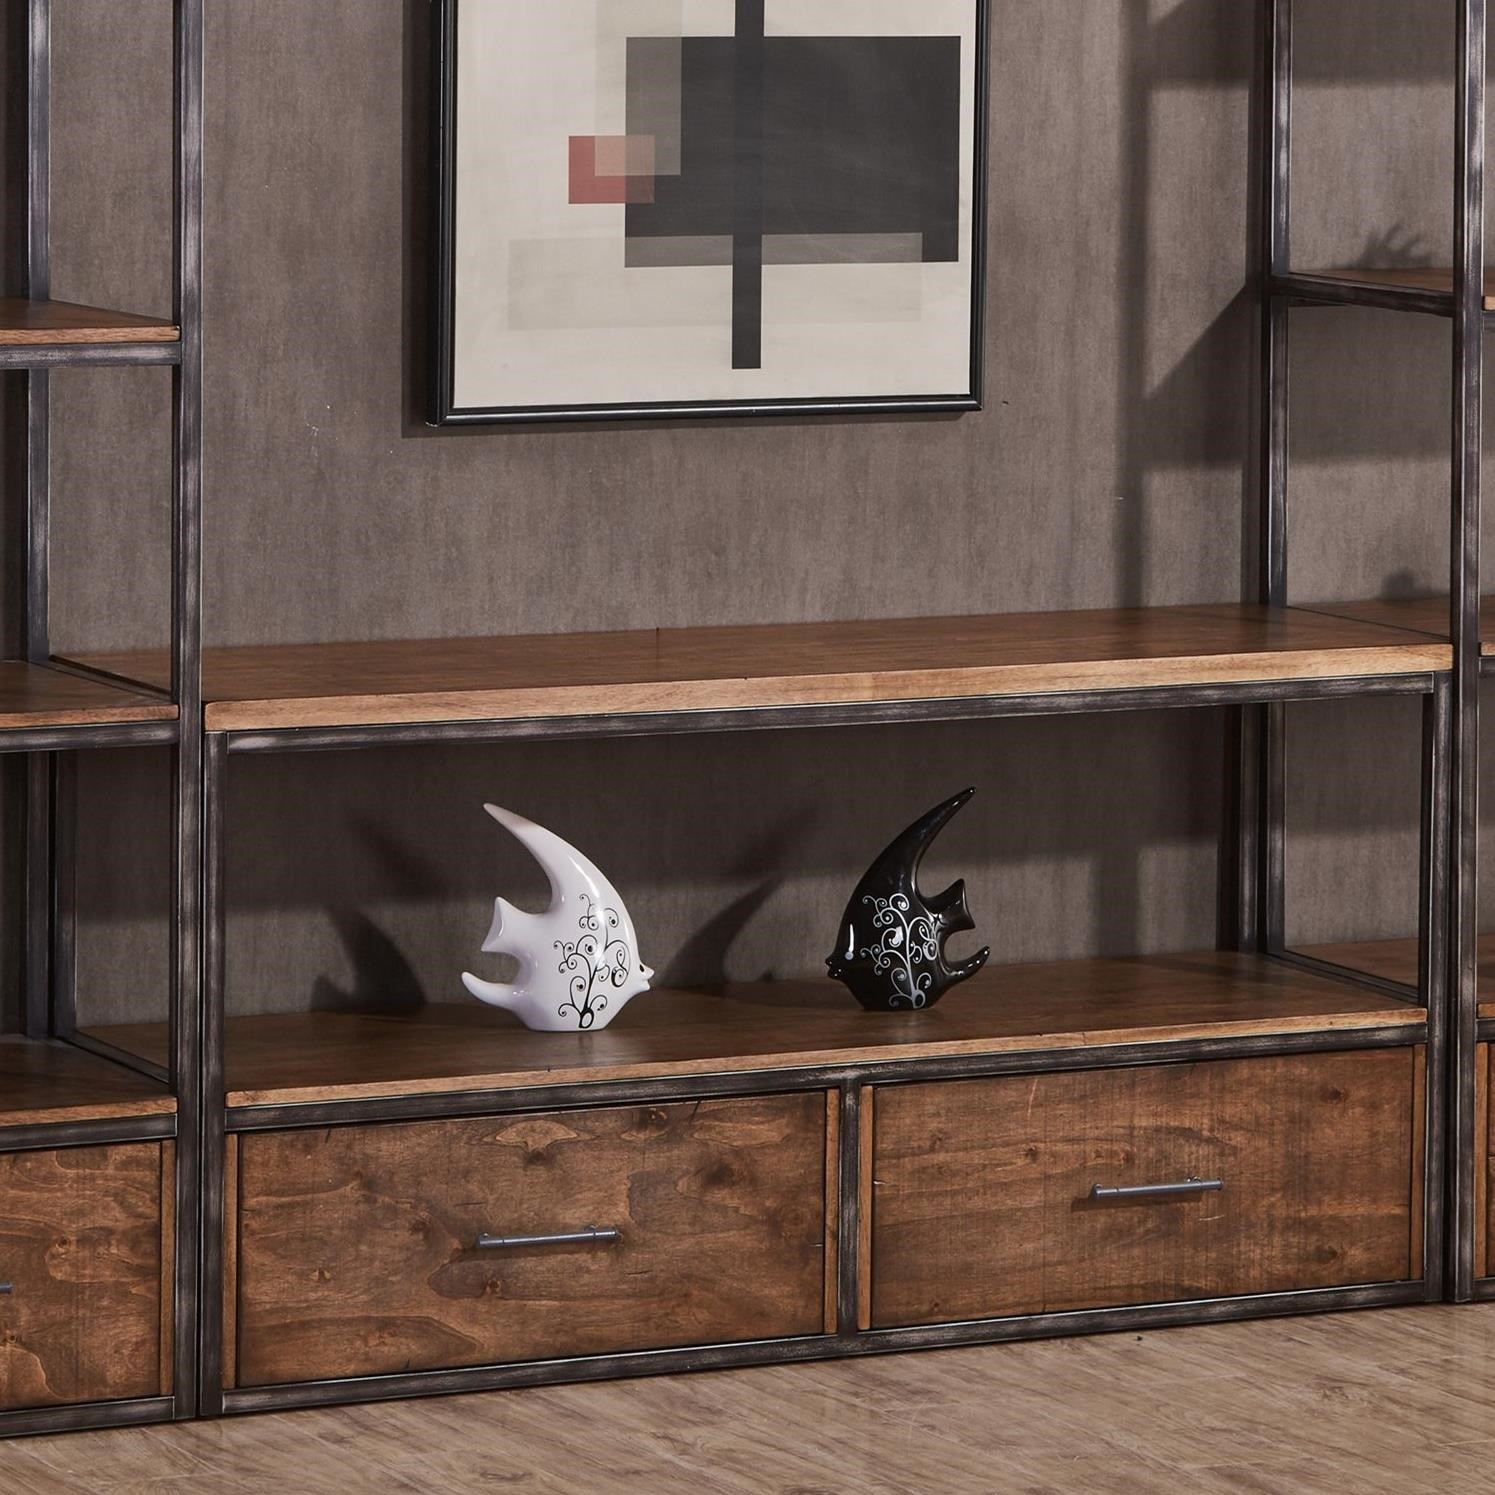 7326 TV Console by United Furniture Industries at Dream Home Interiors